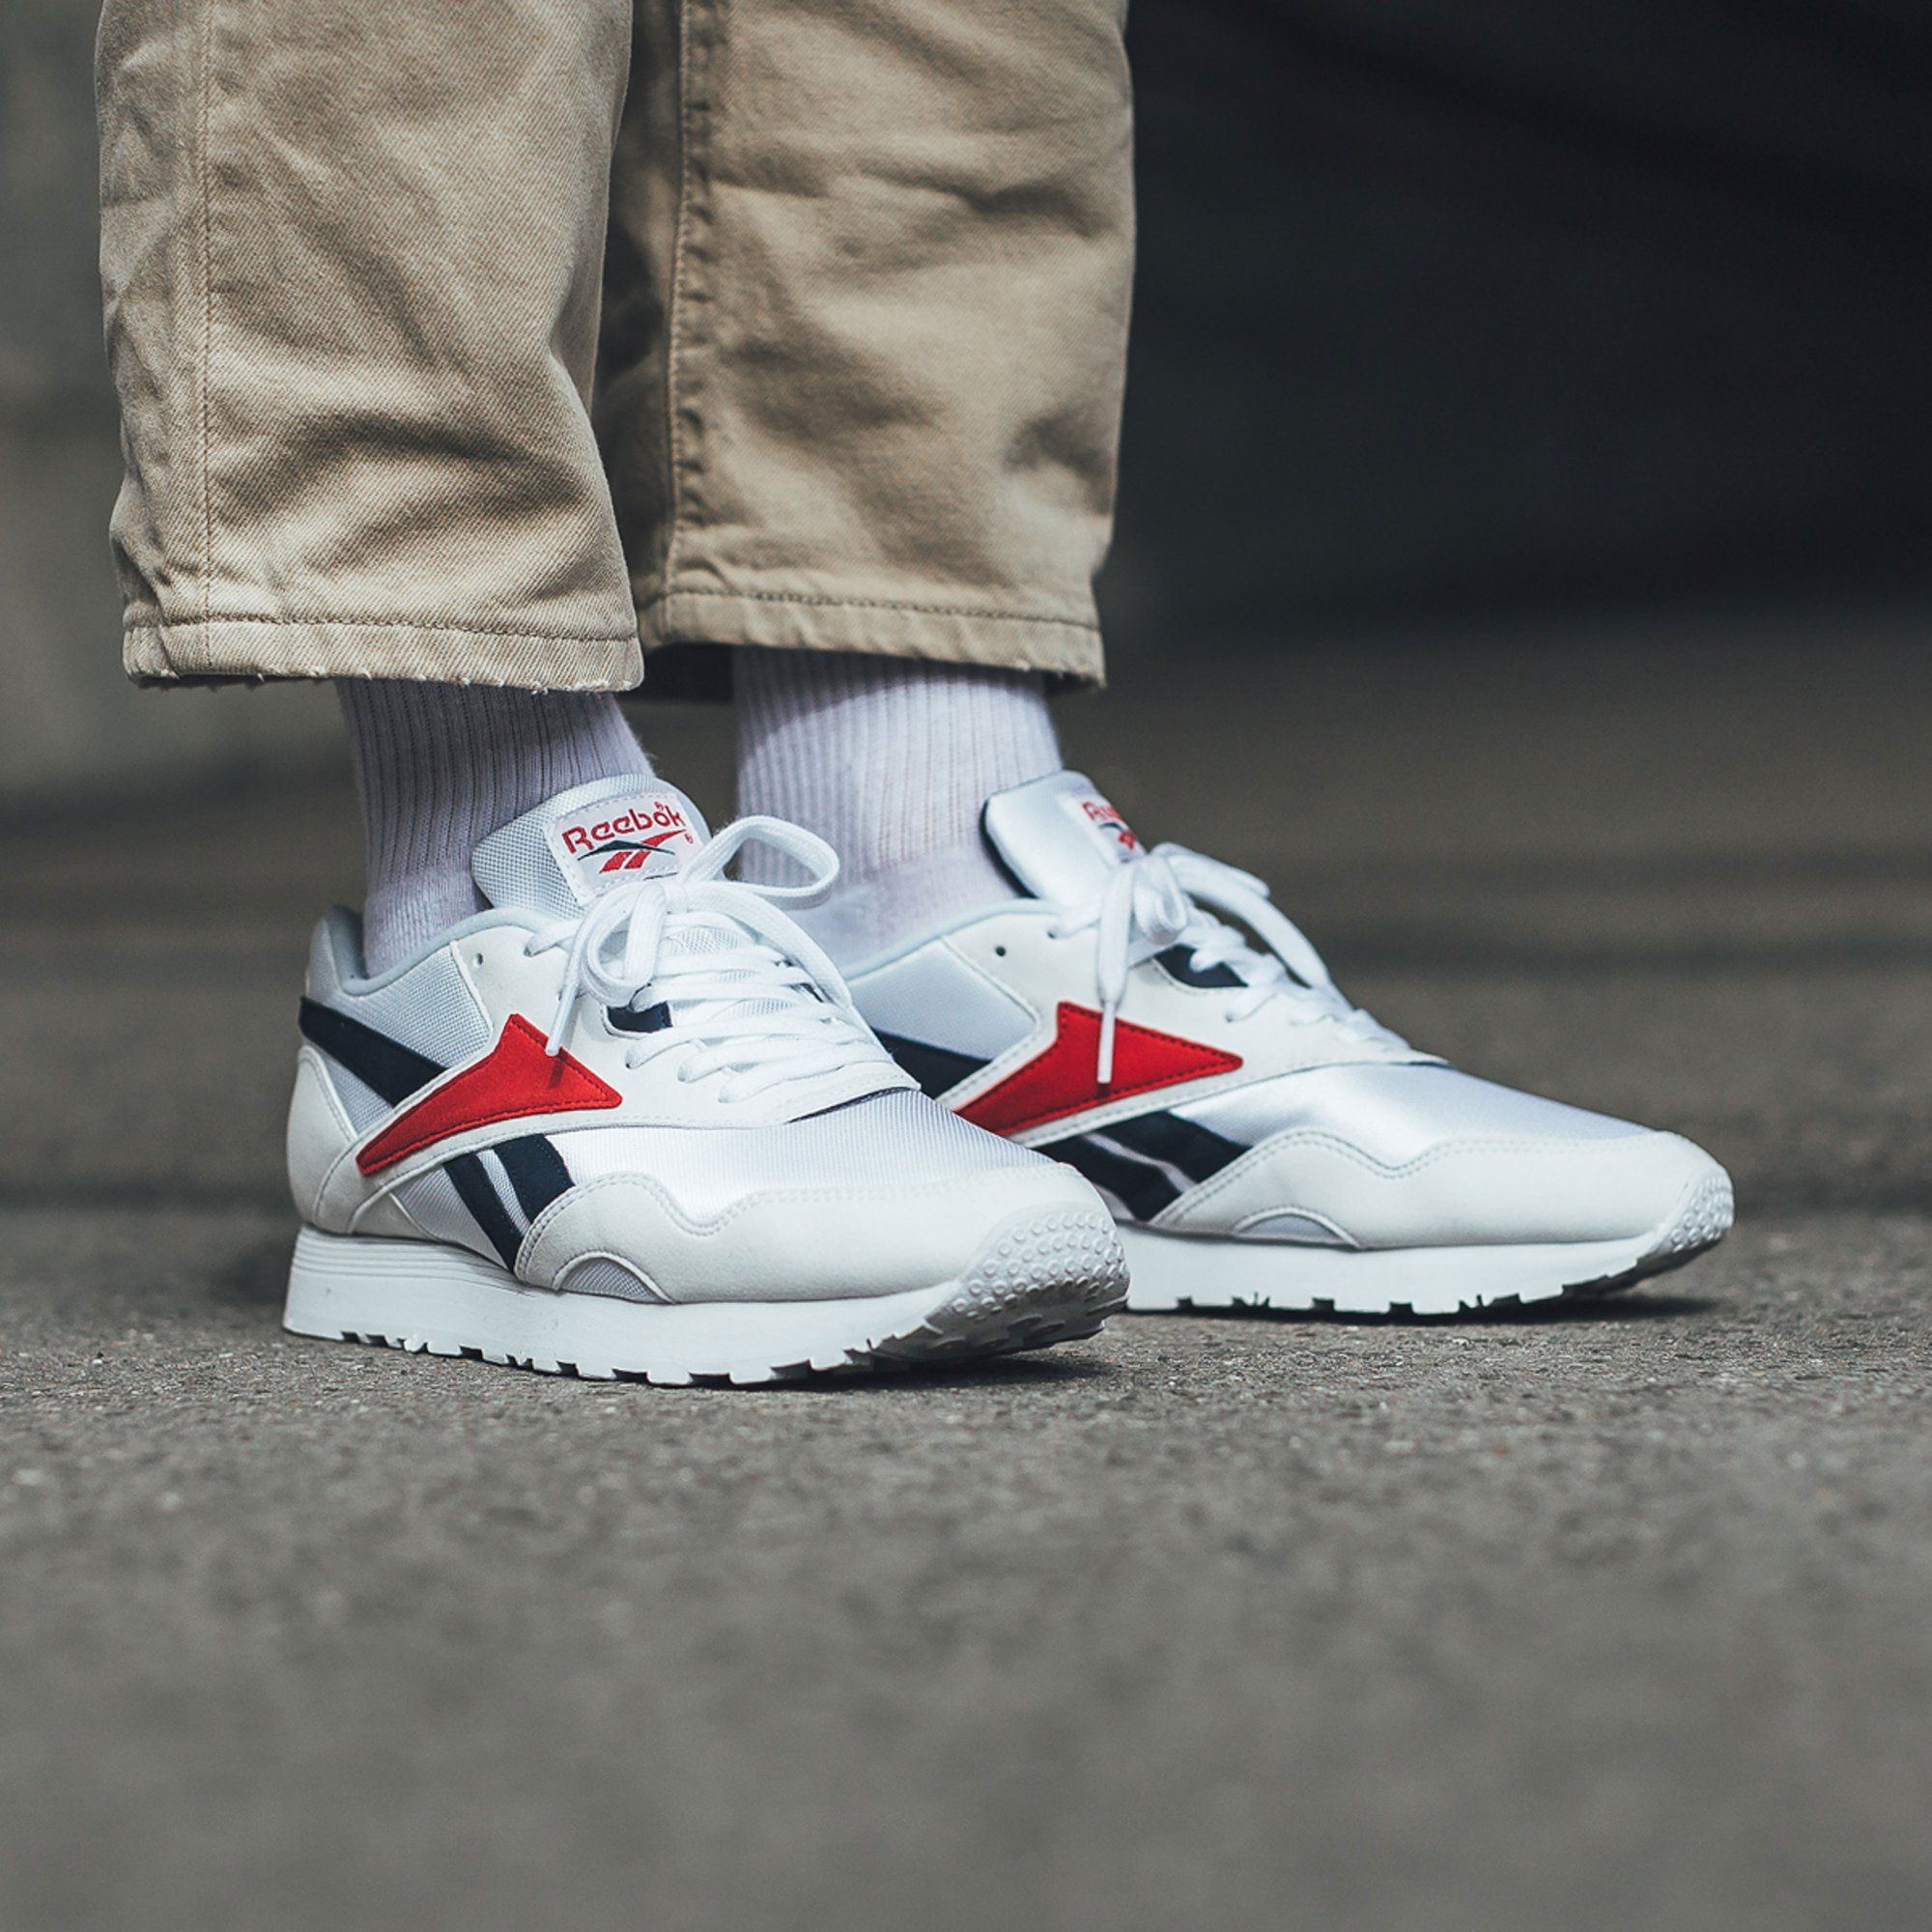 818333e5d8f78 Reebok Rapide OG | Reebok Shoes in 2019 | Shoes sneakers, Shoes ...